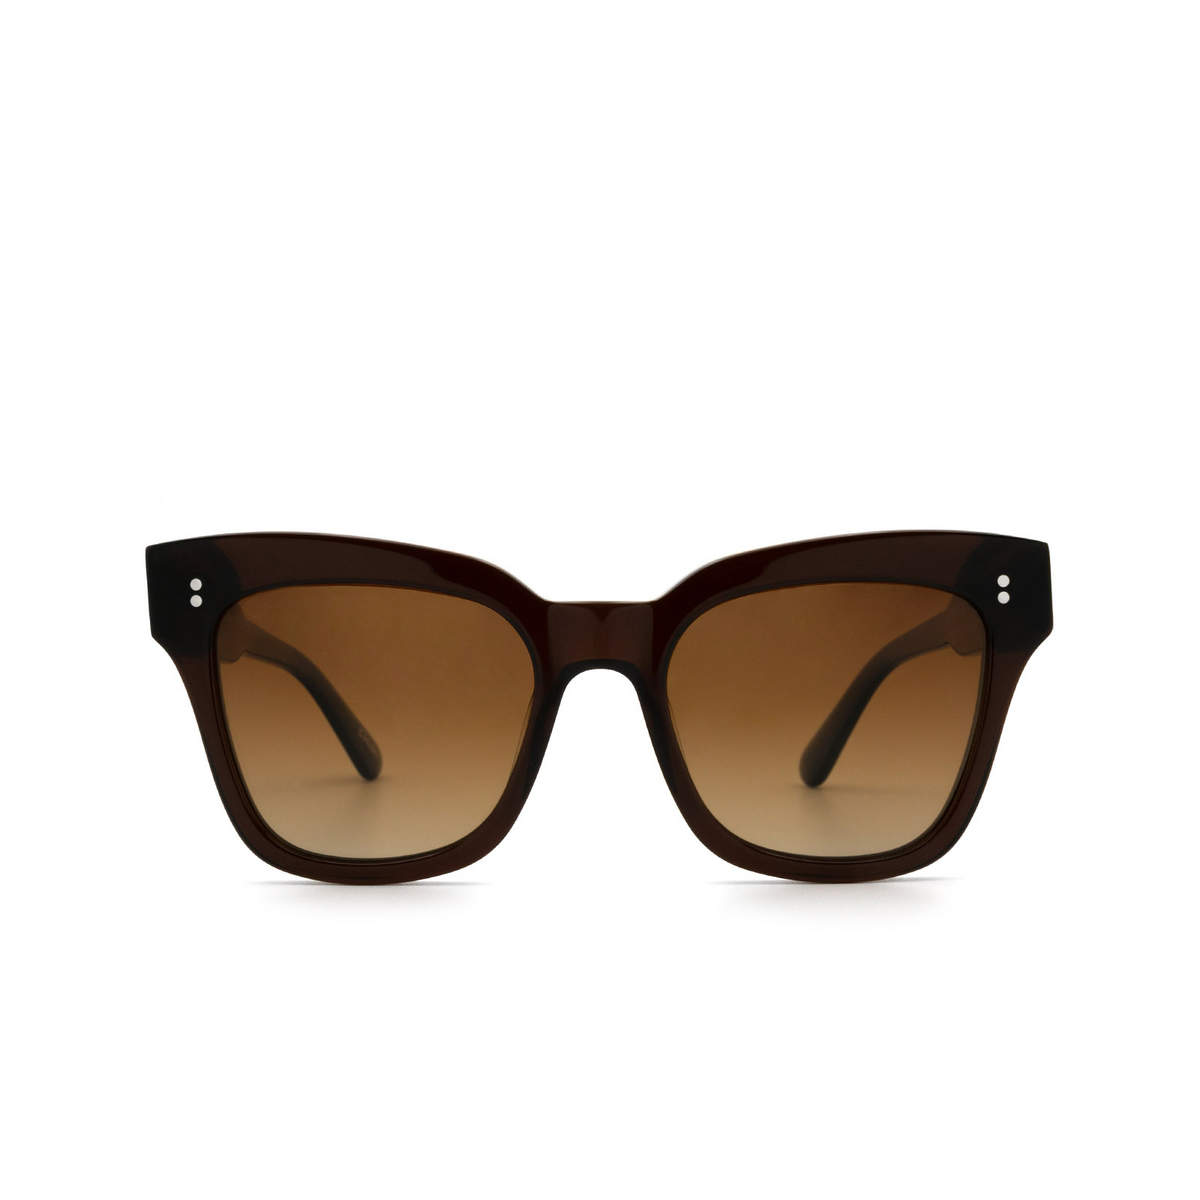 Chimi® Butterfly Sunglasses: 07 color Brown - front view.